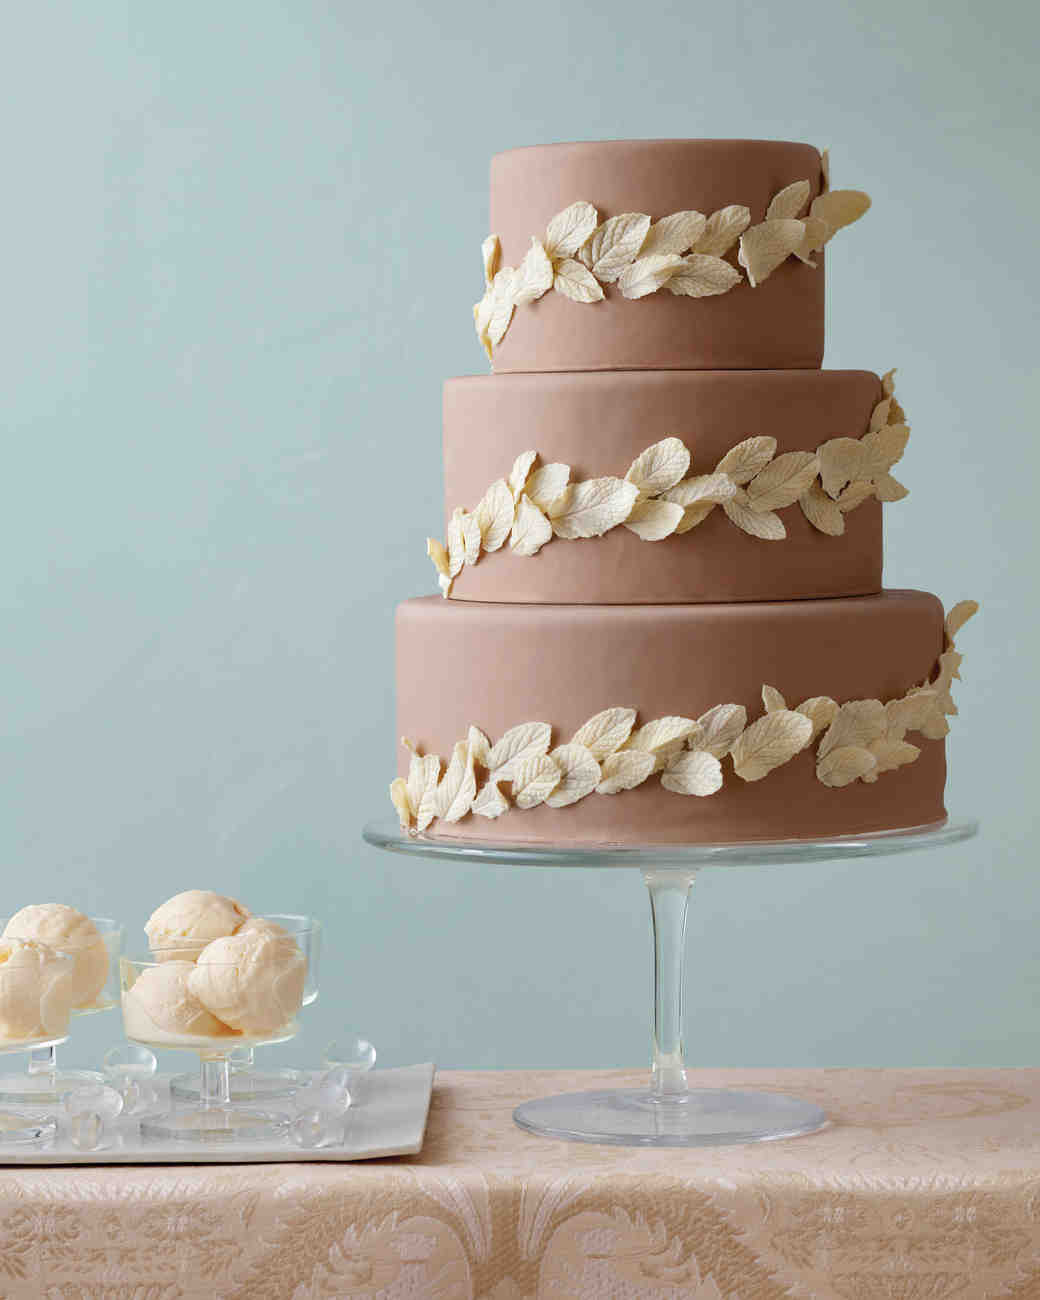 Creating a DIY Wedding Cake With An Amazing Rustic Style